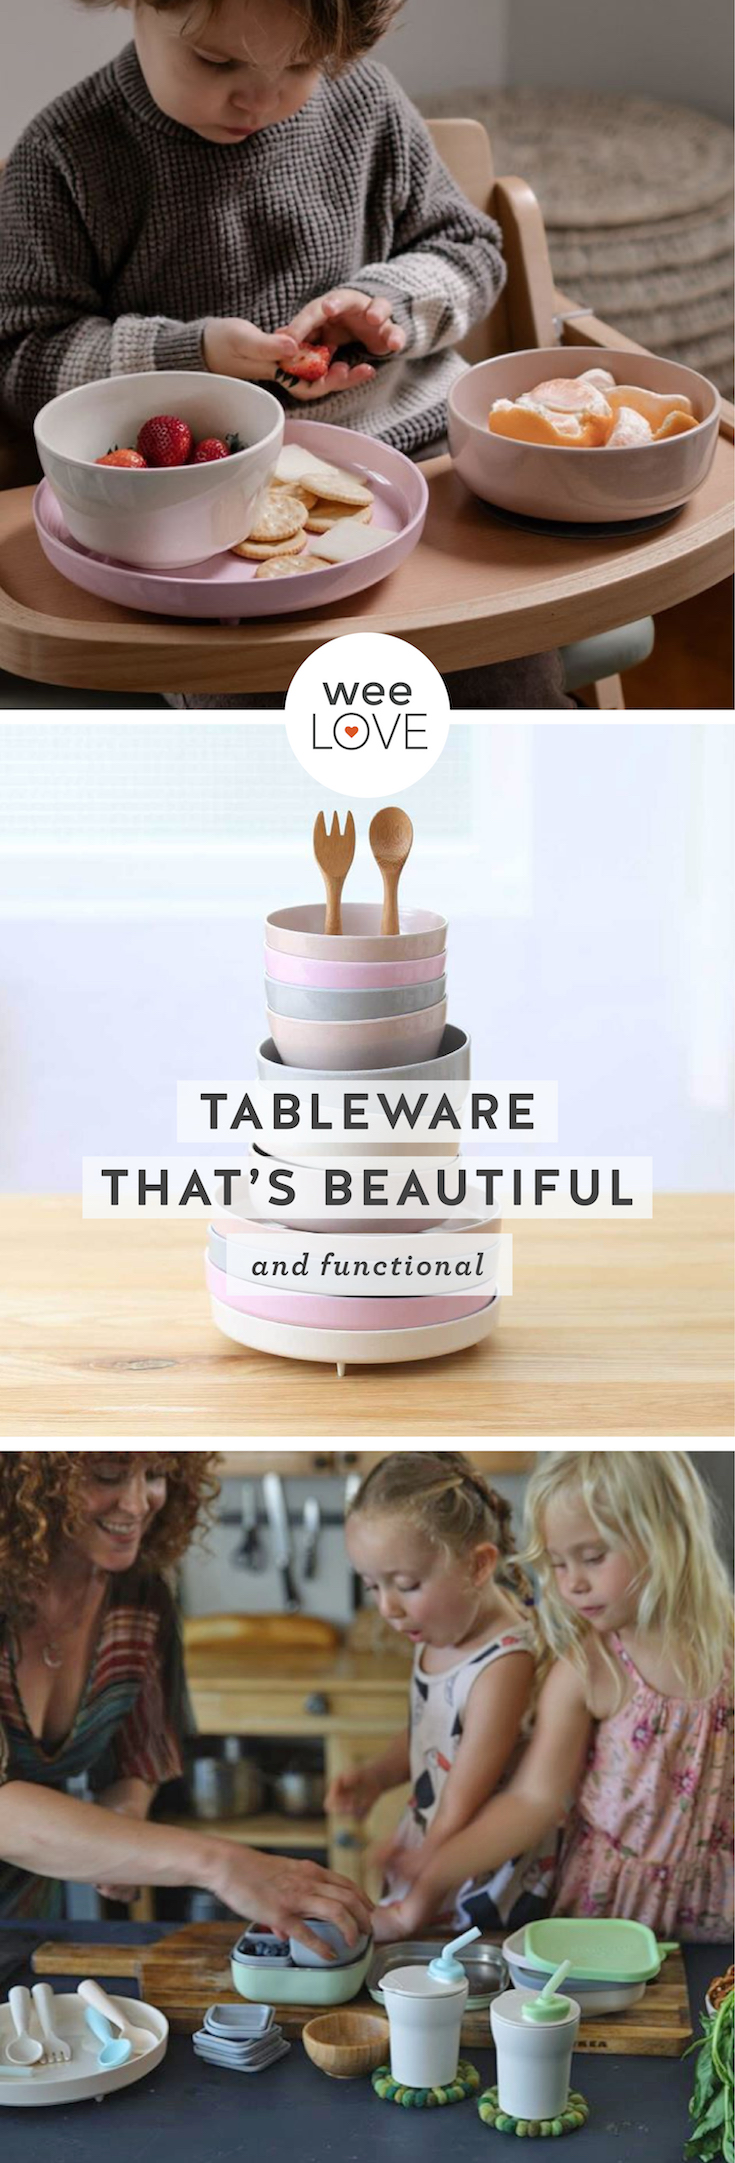 "stacked dishes and cups from miniware with a tagline that reads ""tableware that's beautiful and functional"""